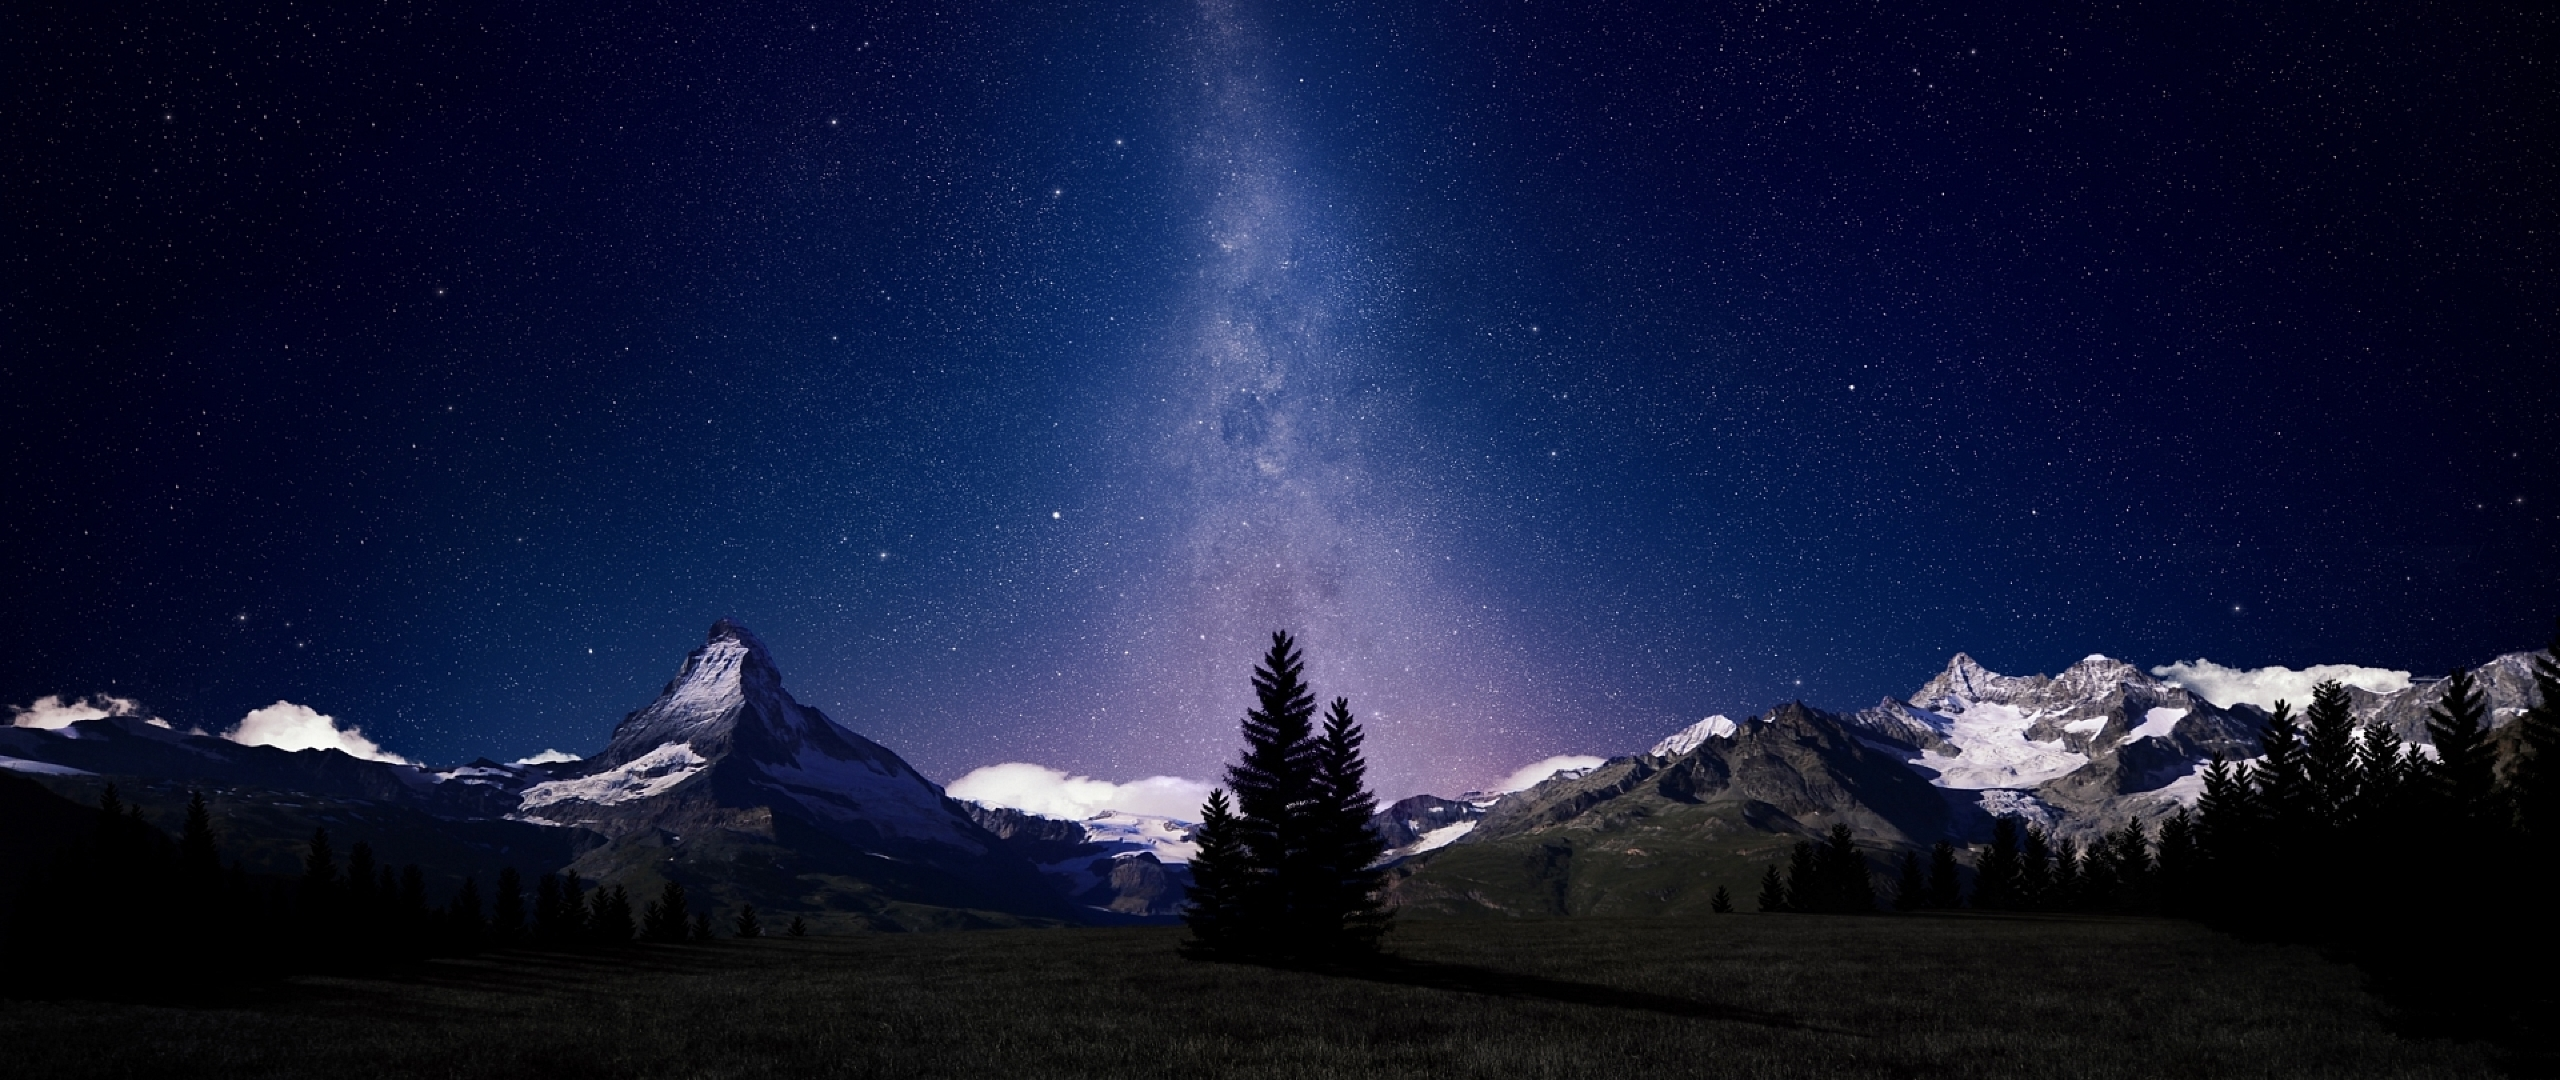 Download Milky Way Galaxy 7680x4320 Resolution, Full HD ...